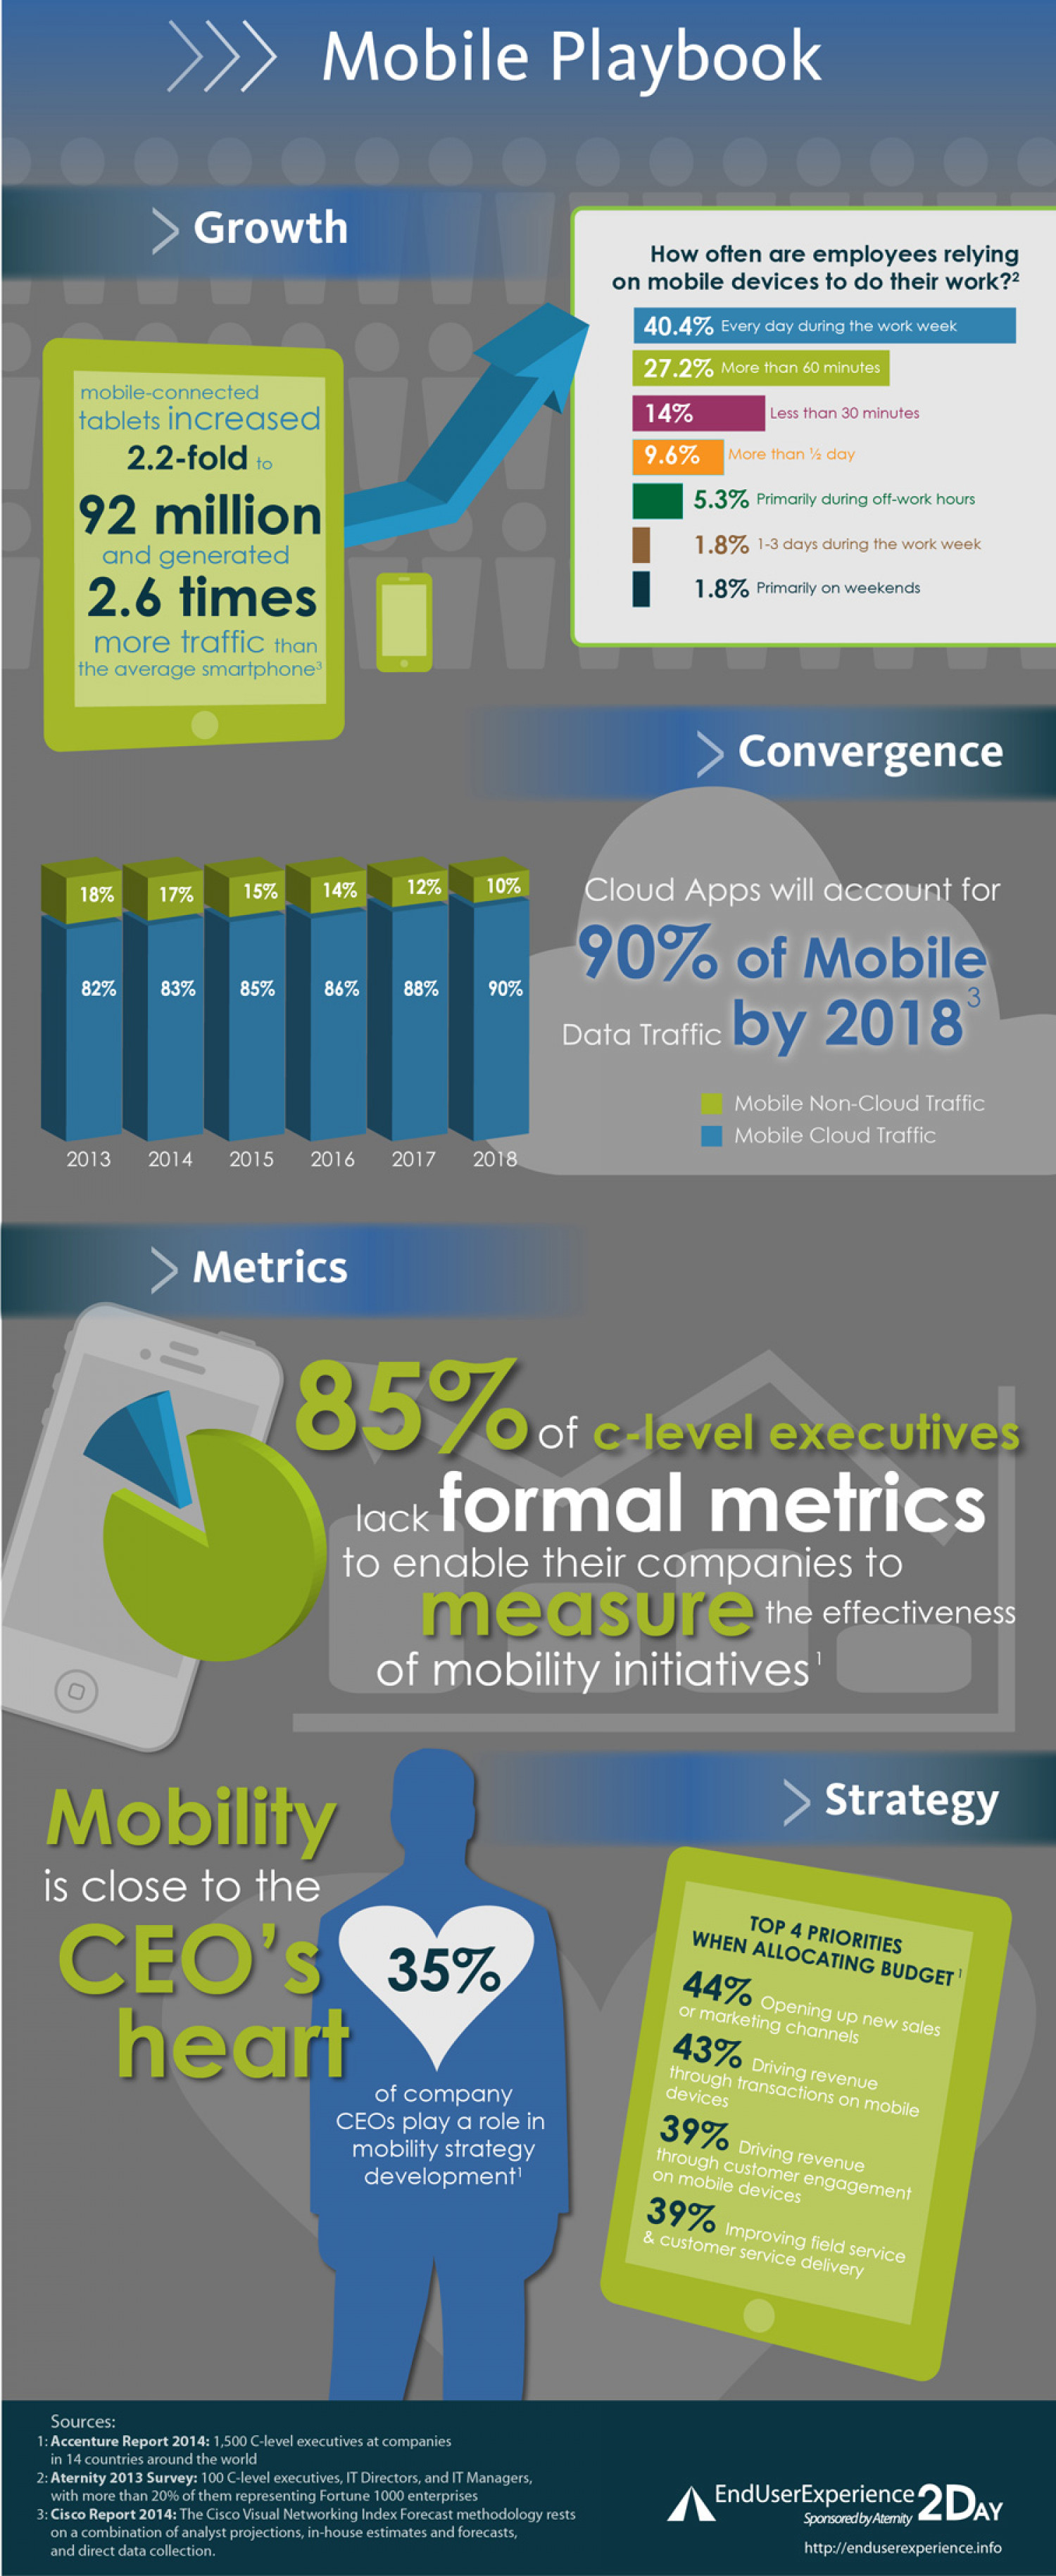 The Mobile Playbook Infographic